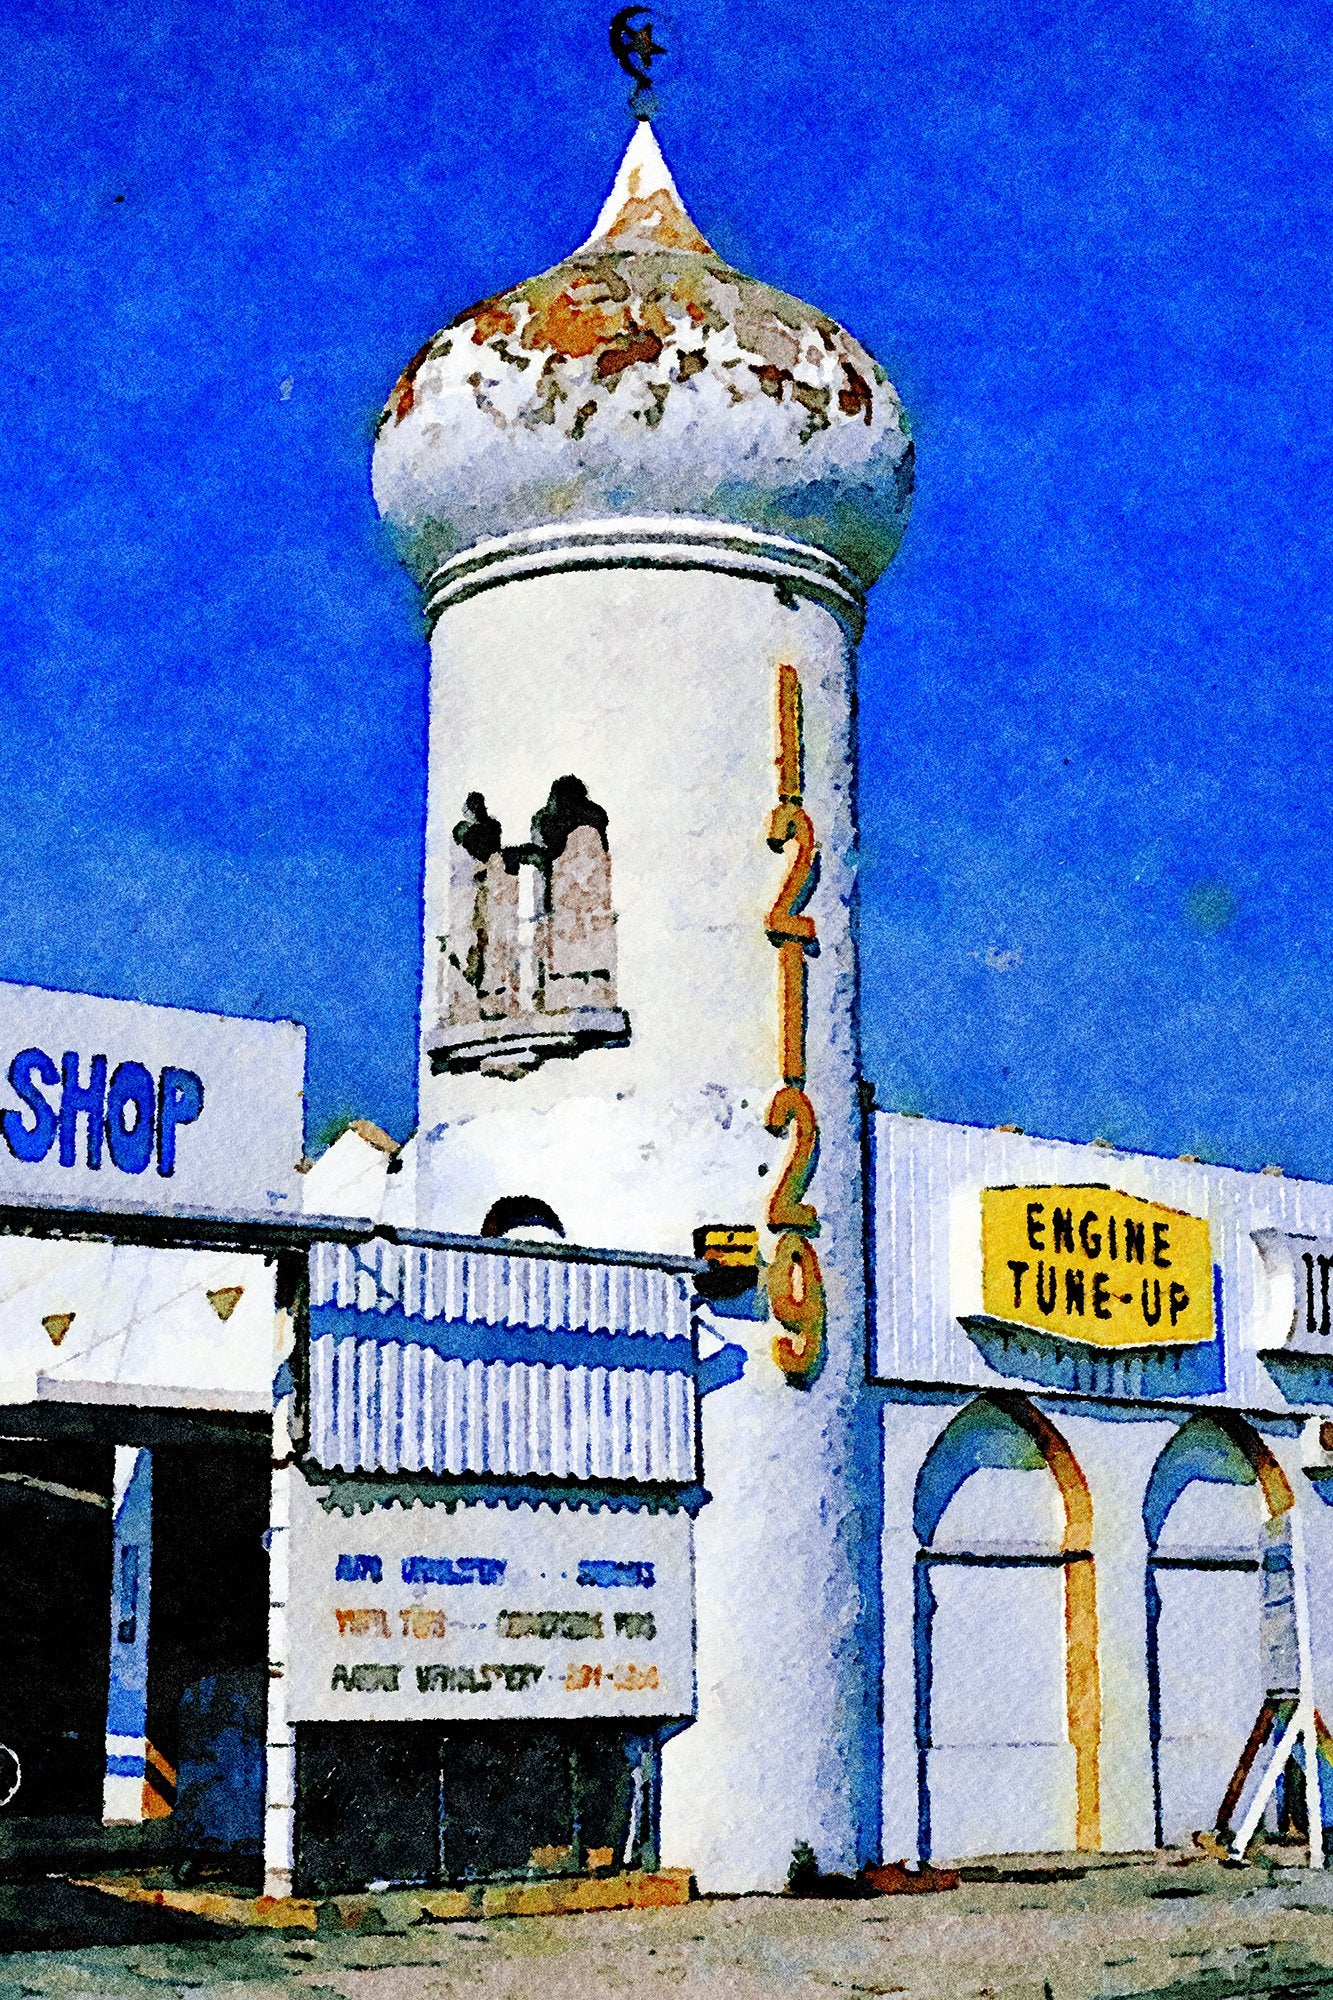 Hillborn Top Shop, Formerly Gates Tires, Tower View, Washington Place 7, Grandview Mar Vista, California, Reworked, Series 1